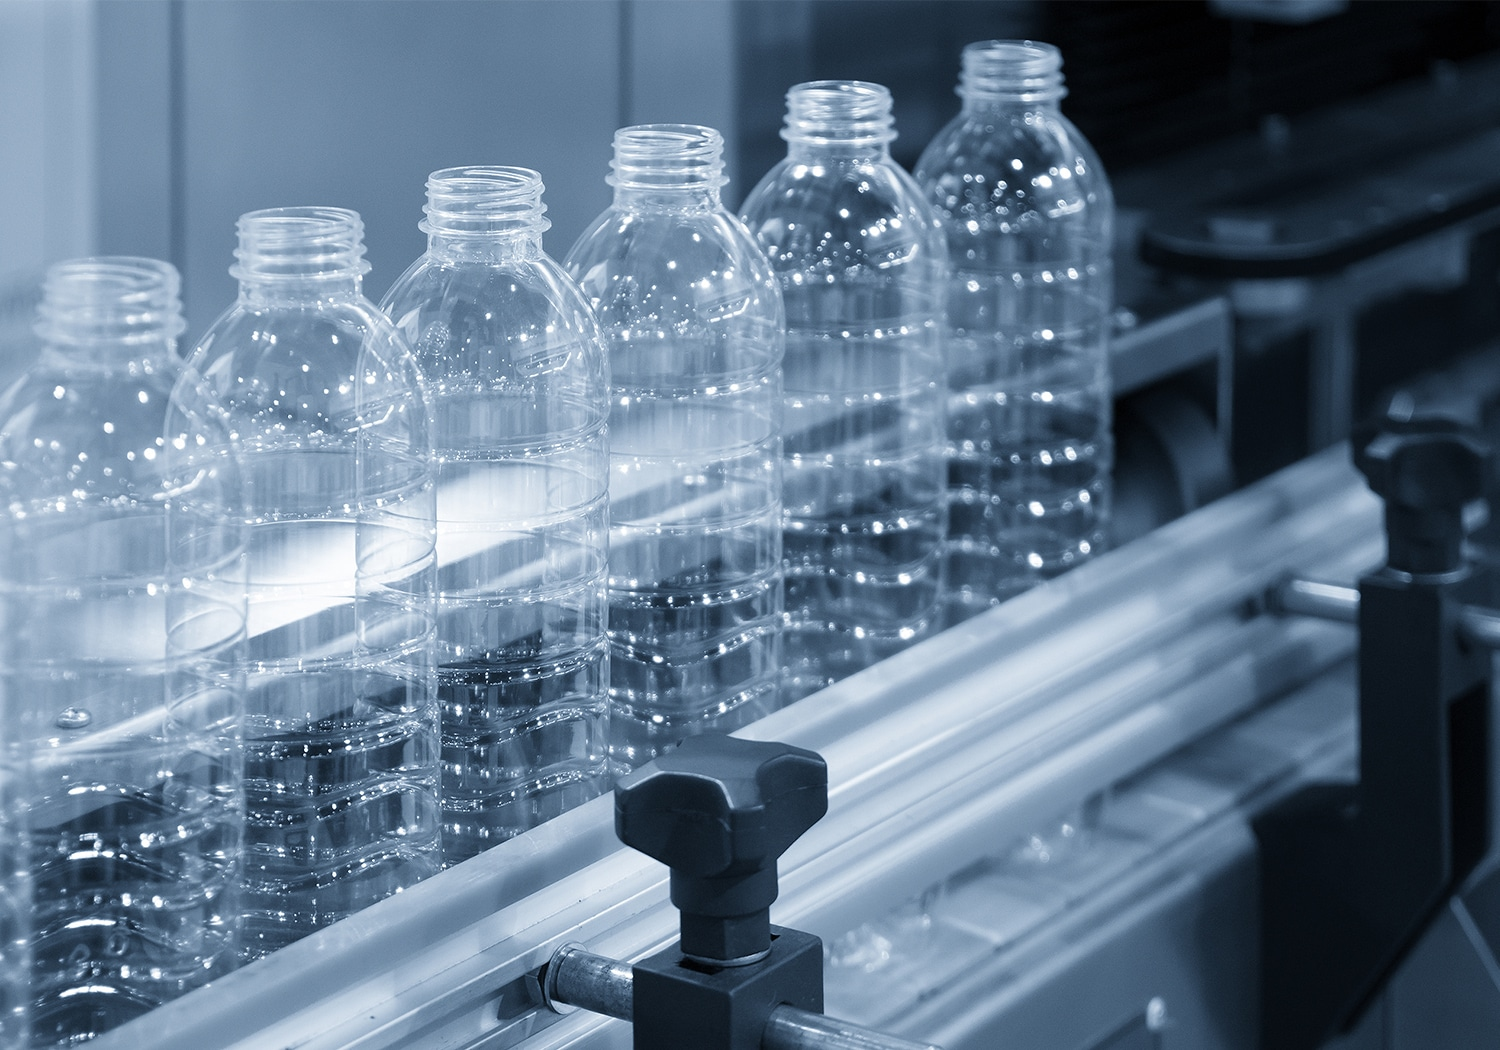 PET Bottle Drying Systems